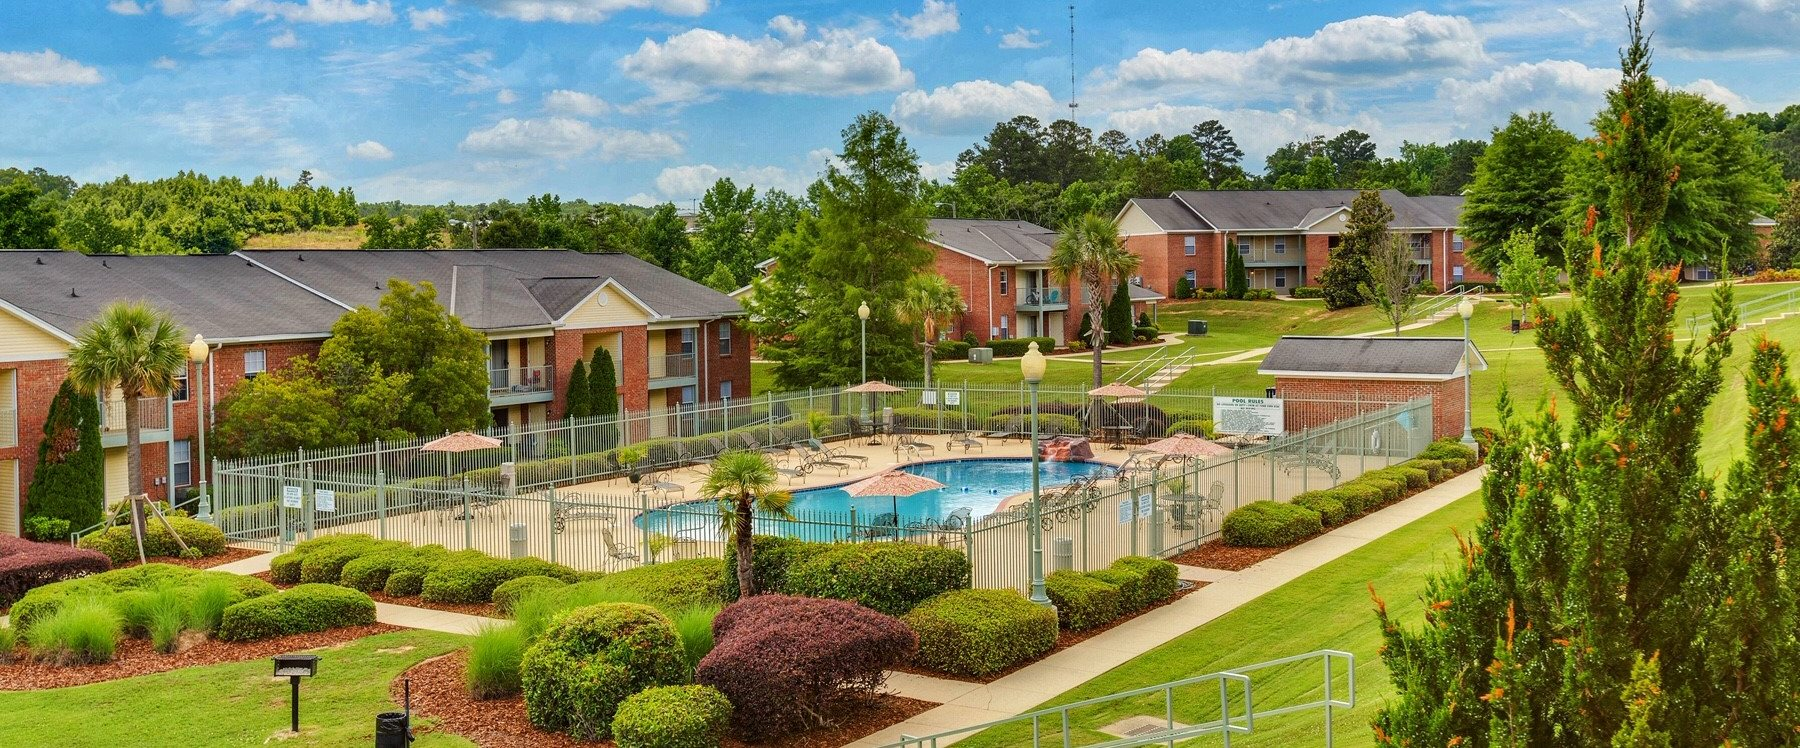 Mountain View Apartments - Tuscaloosa, AL